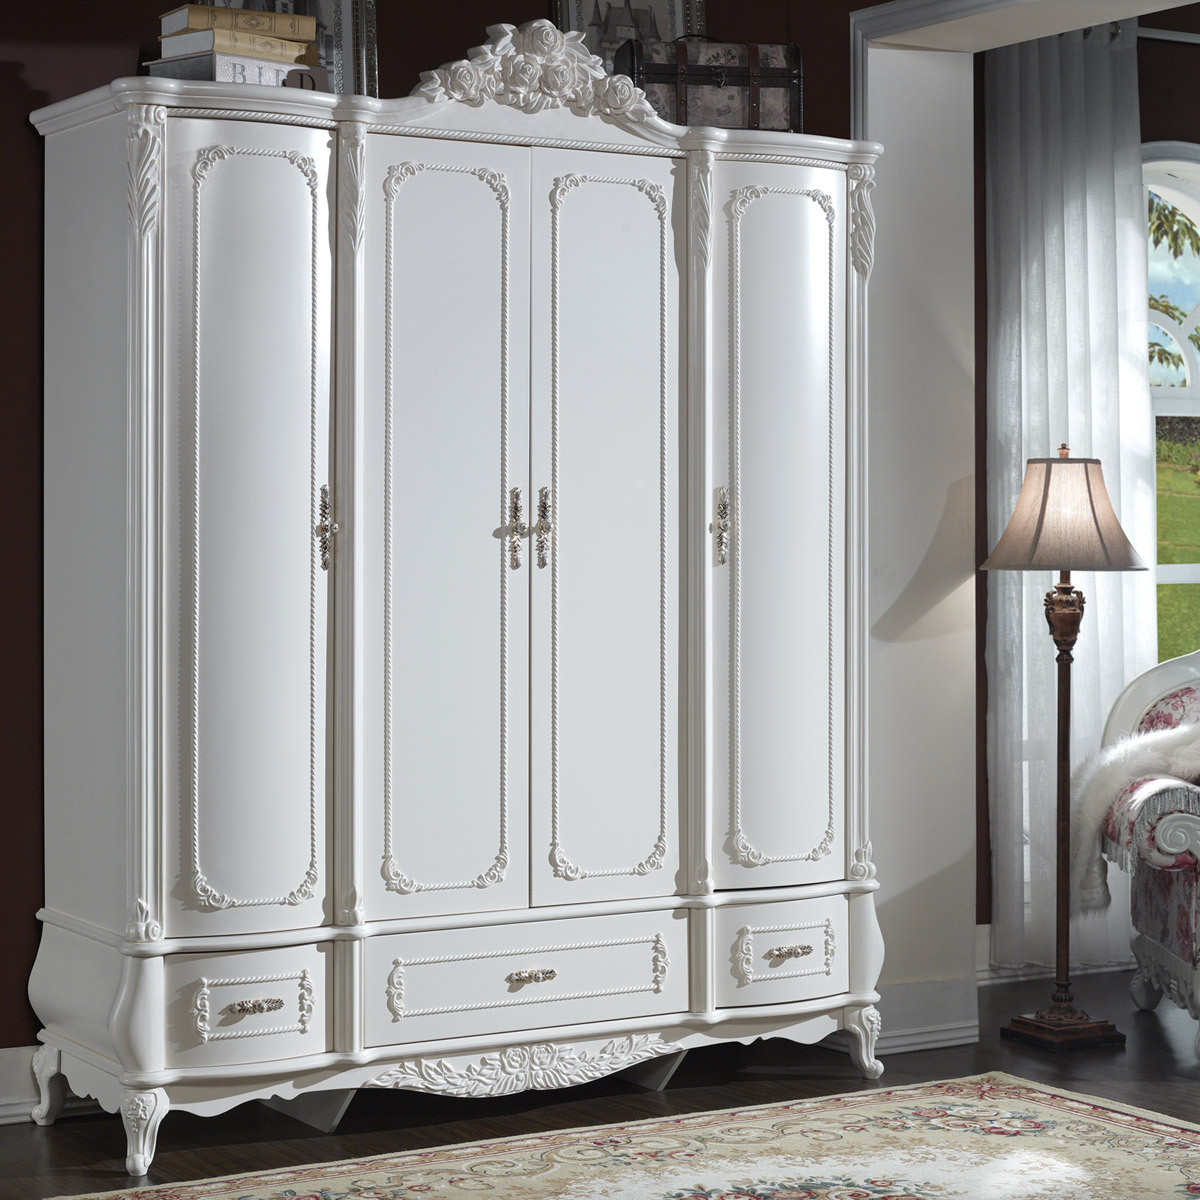 Wood Furniture Manufacturers White Wooden Wardrobe Designs